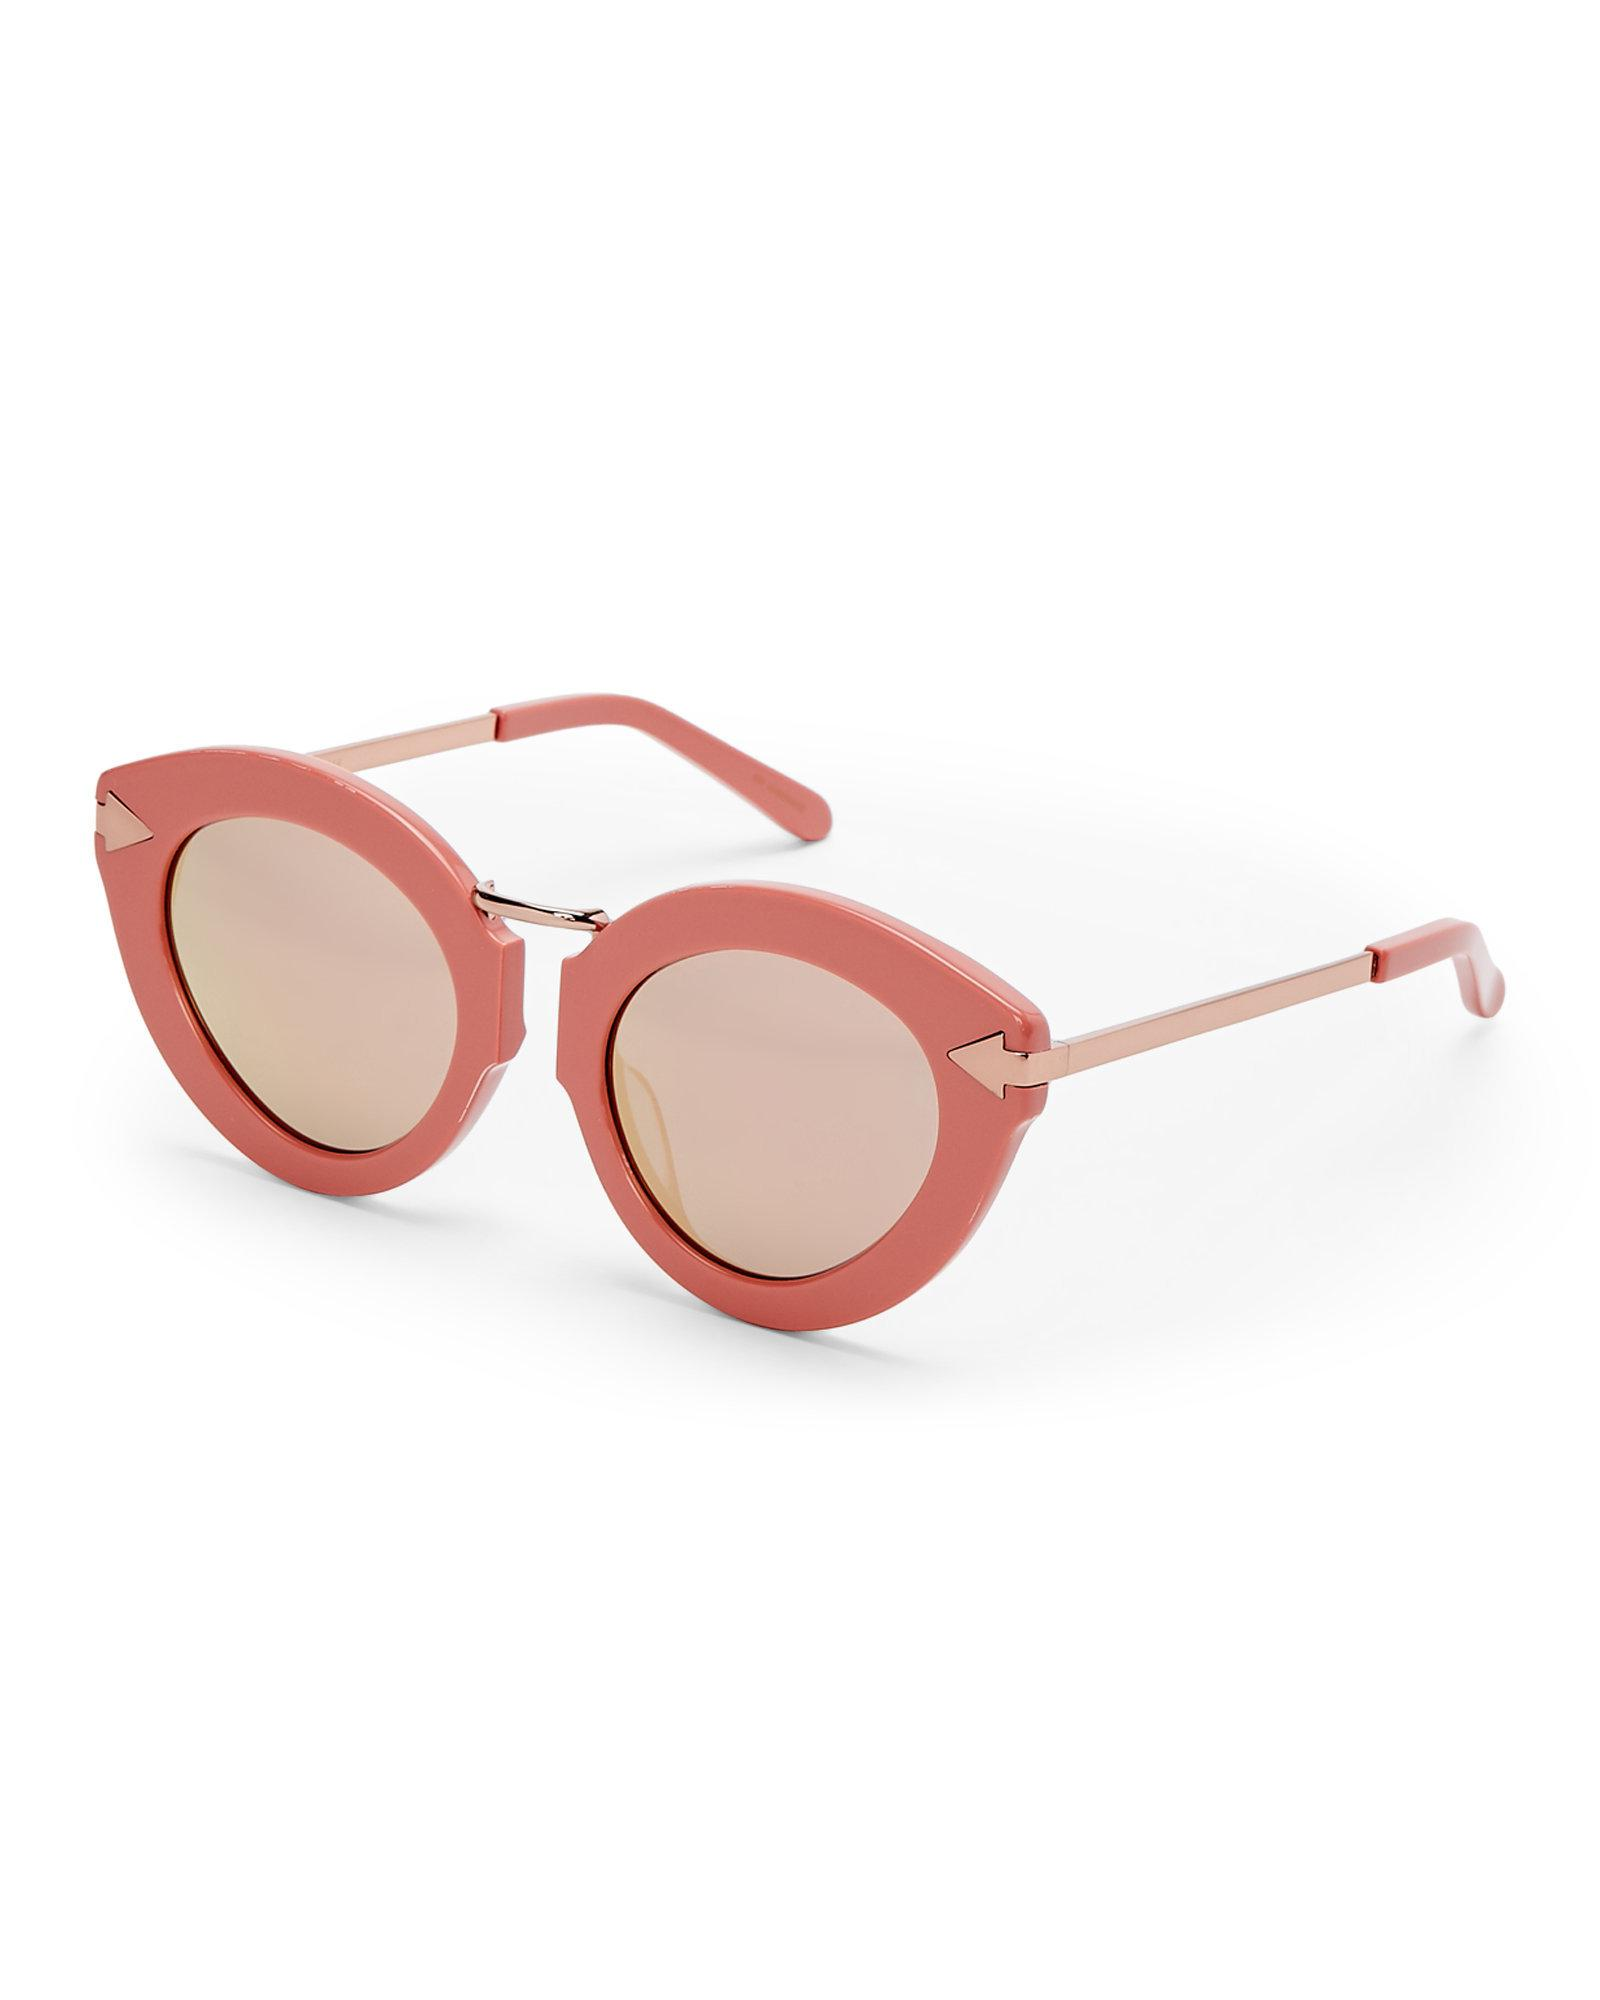 Lunar Flowerpatch Cat-eye Acetate And Rose Gold-tone Mirrored Sunglasses - Pink Karen Walker cmNLpaXiz3